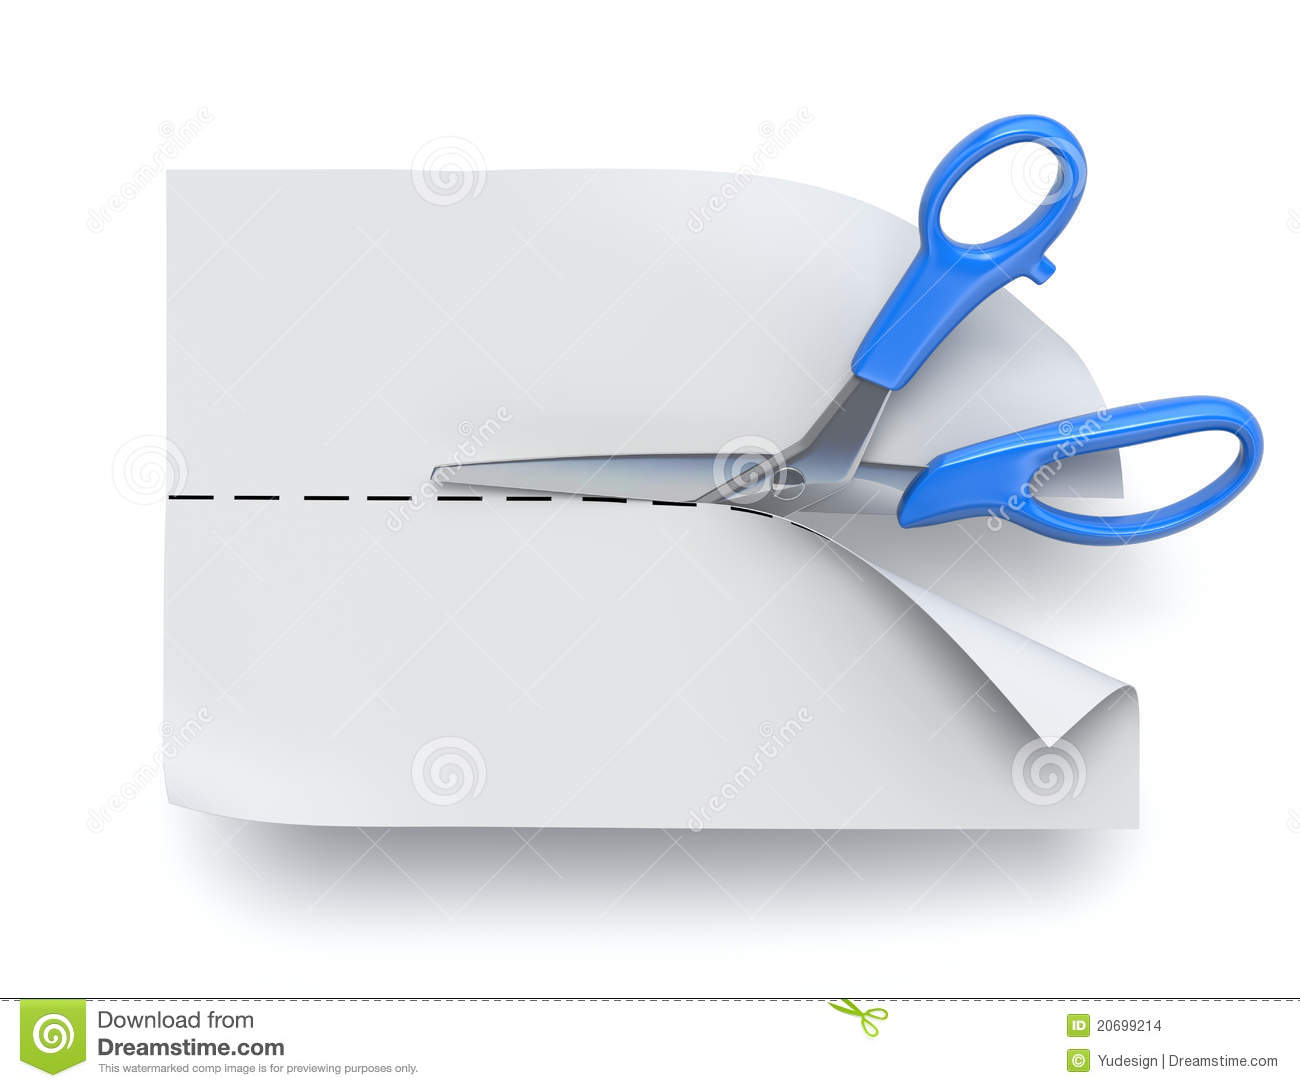 orange line map with Stock Images Scissors Cutting Paper Image20699214 on Bruecke am tay unglueck further Gardasee Aufkleber 140 Mm furthermore 3082813034 furthermore Photographing The Big 3 besides 15297376811.